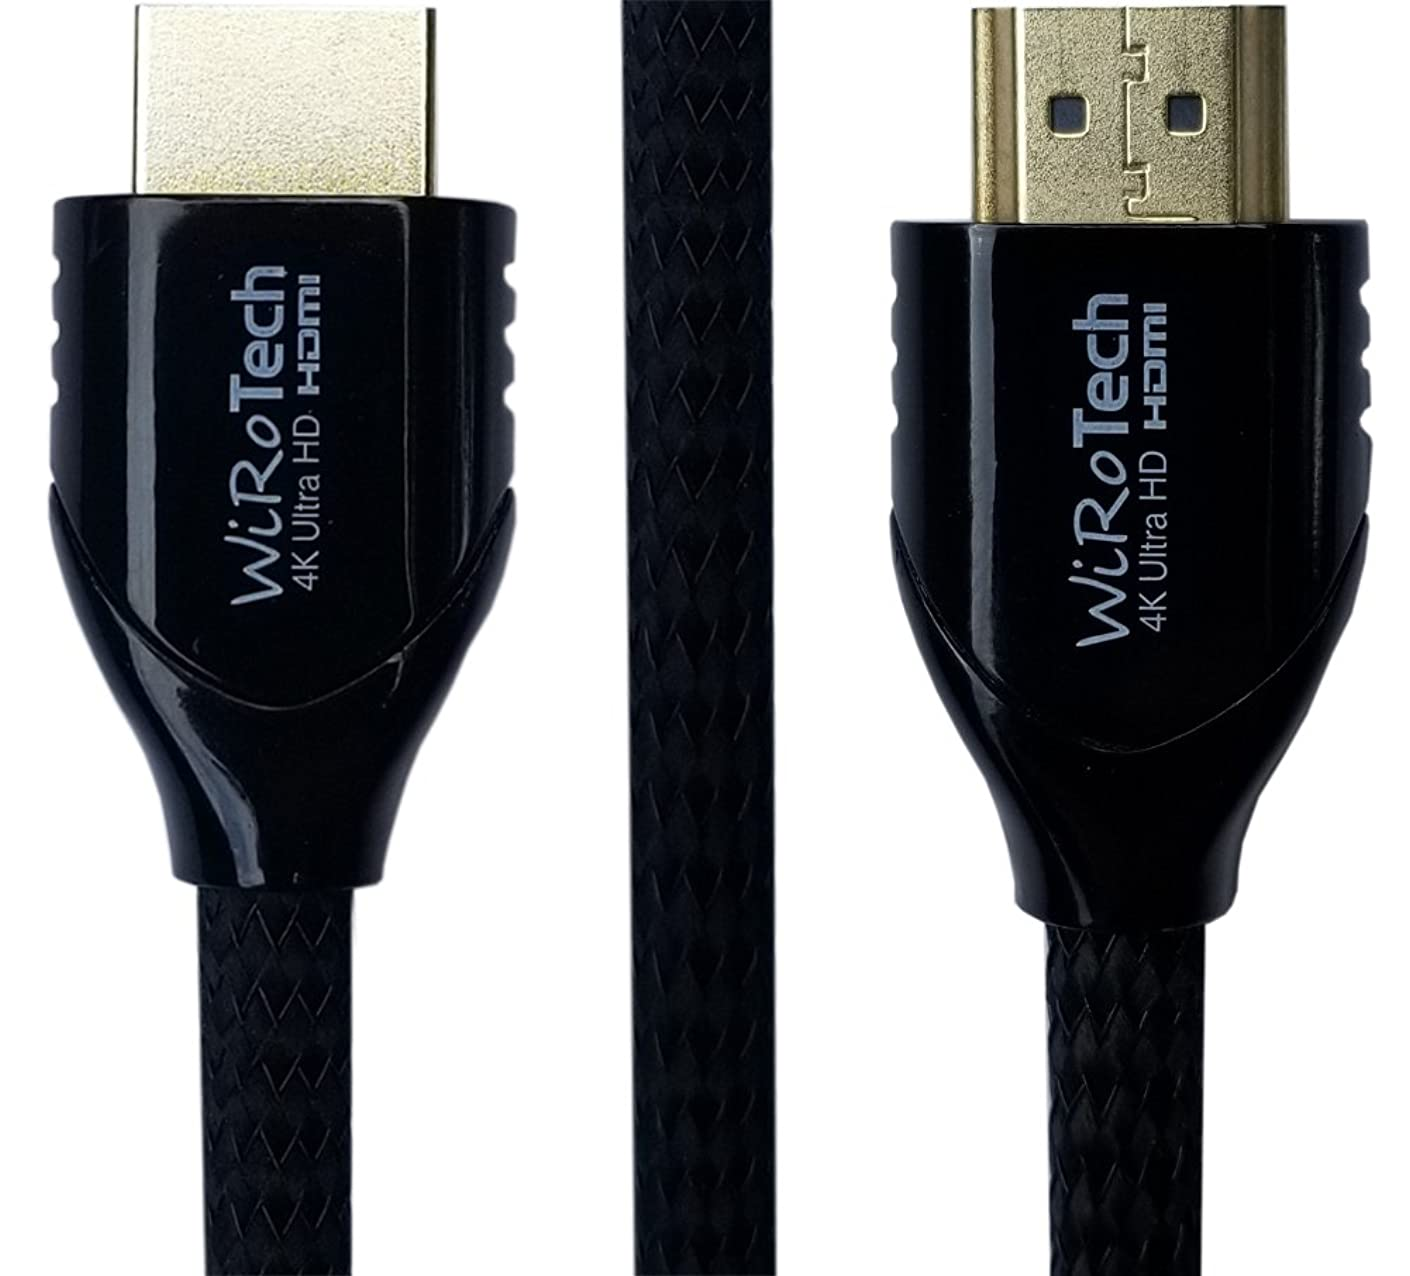 Black HDMI Cable 3ft - HDMI (4K, 60Hz, HDR) Ready - Braided Cable - High Speed 18Gbps - Gold Plated Connectors - Ethernet, Audio Return - Video 2160p